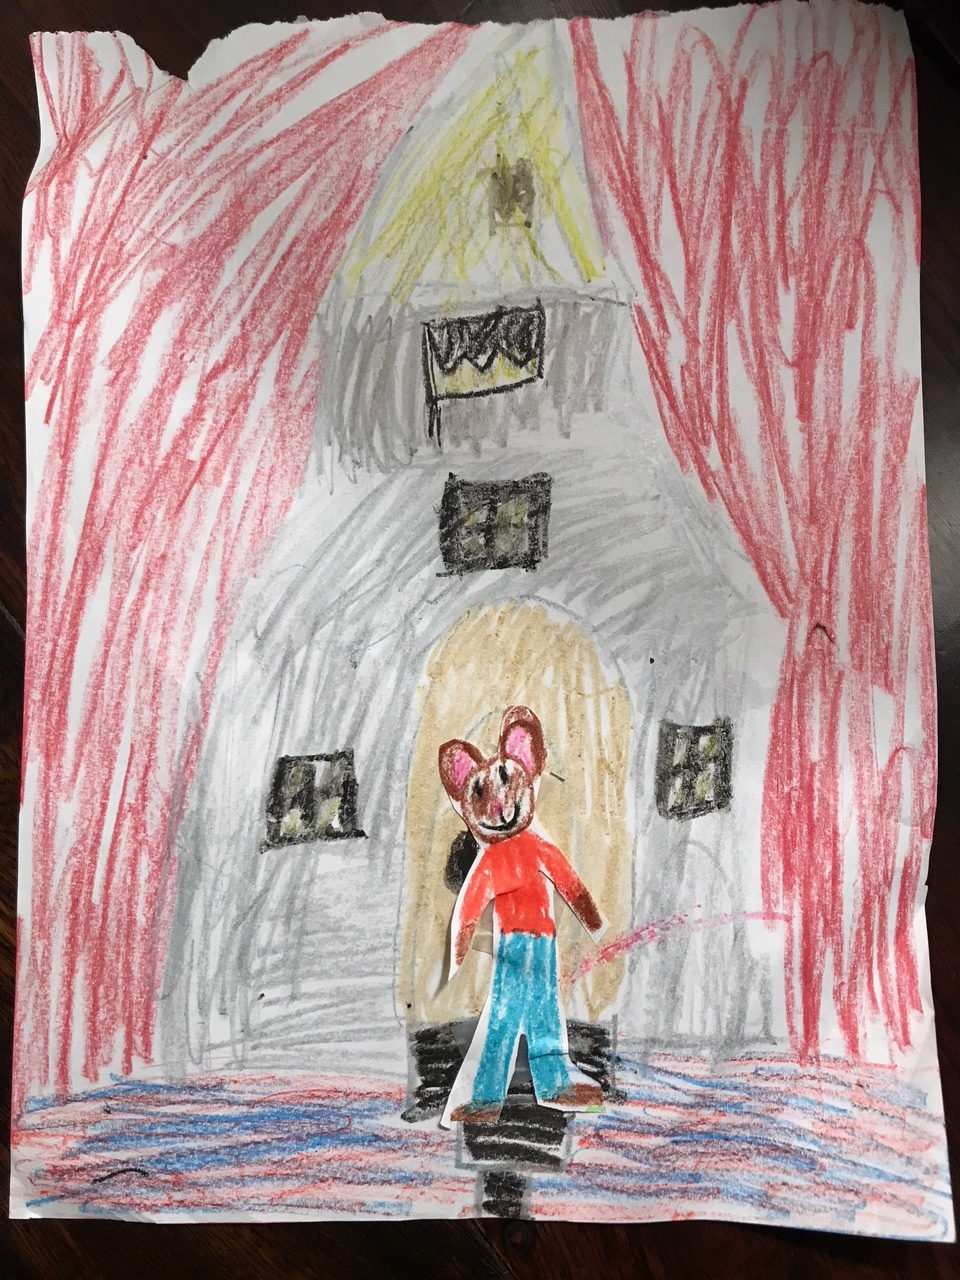 By Cate, 2nd Grade